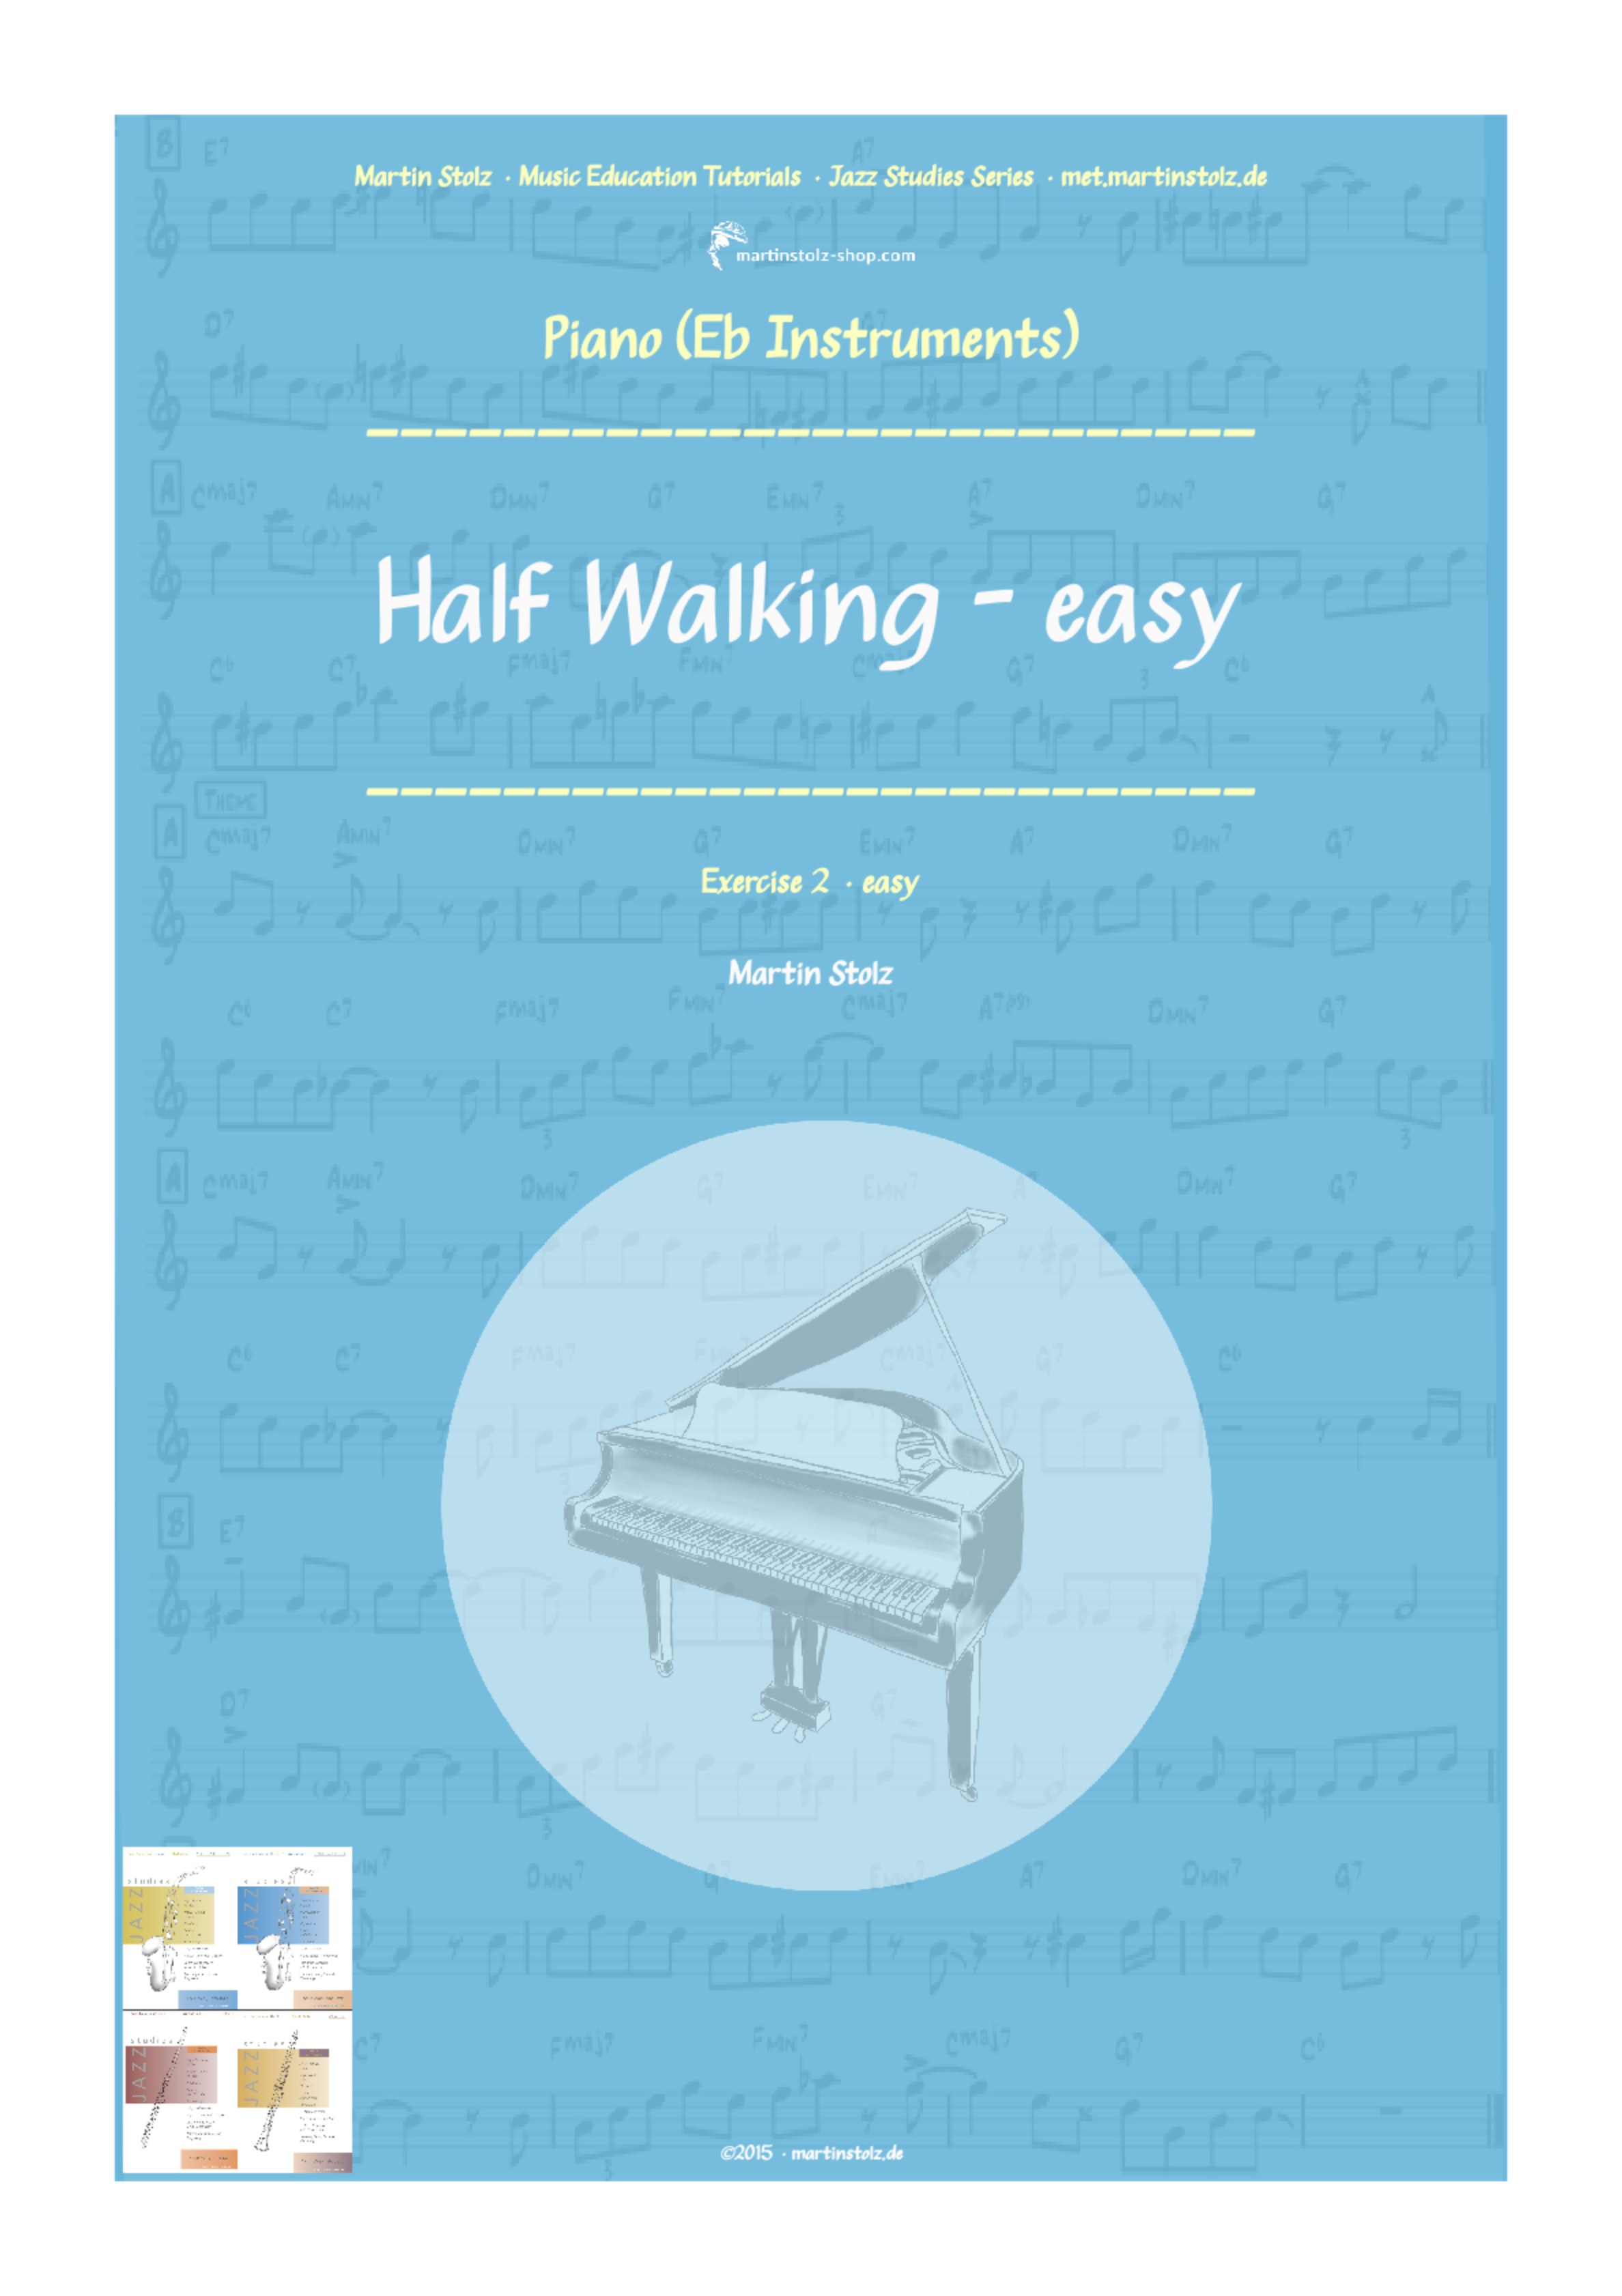 Half Walking (easy version) · Alto Saxophone & Piano